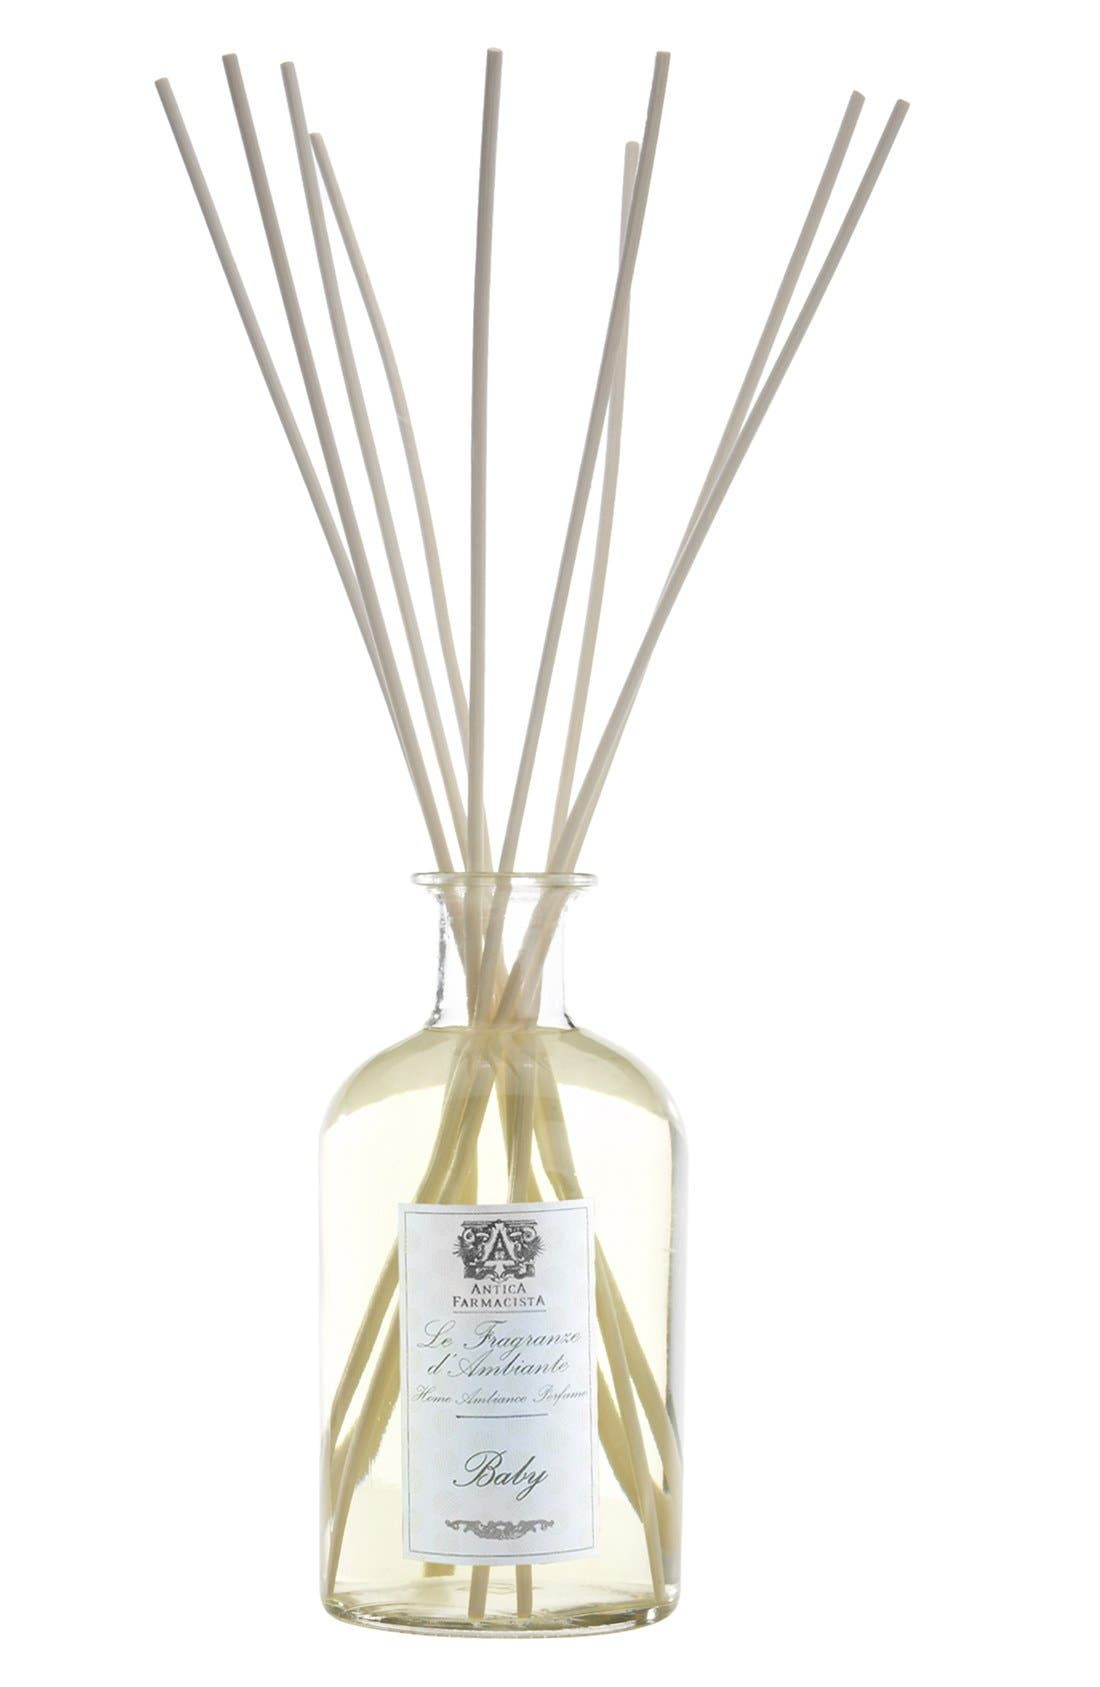 Antica Farmacista 'Baby' Home Ambiance Perfume